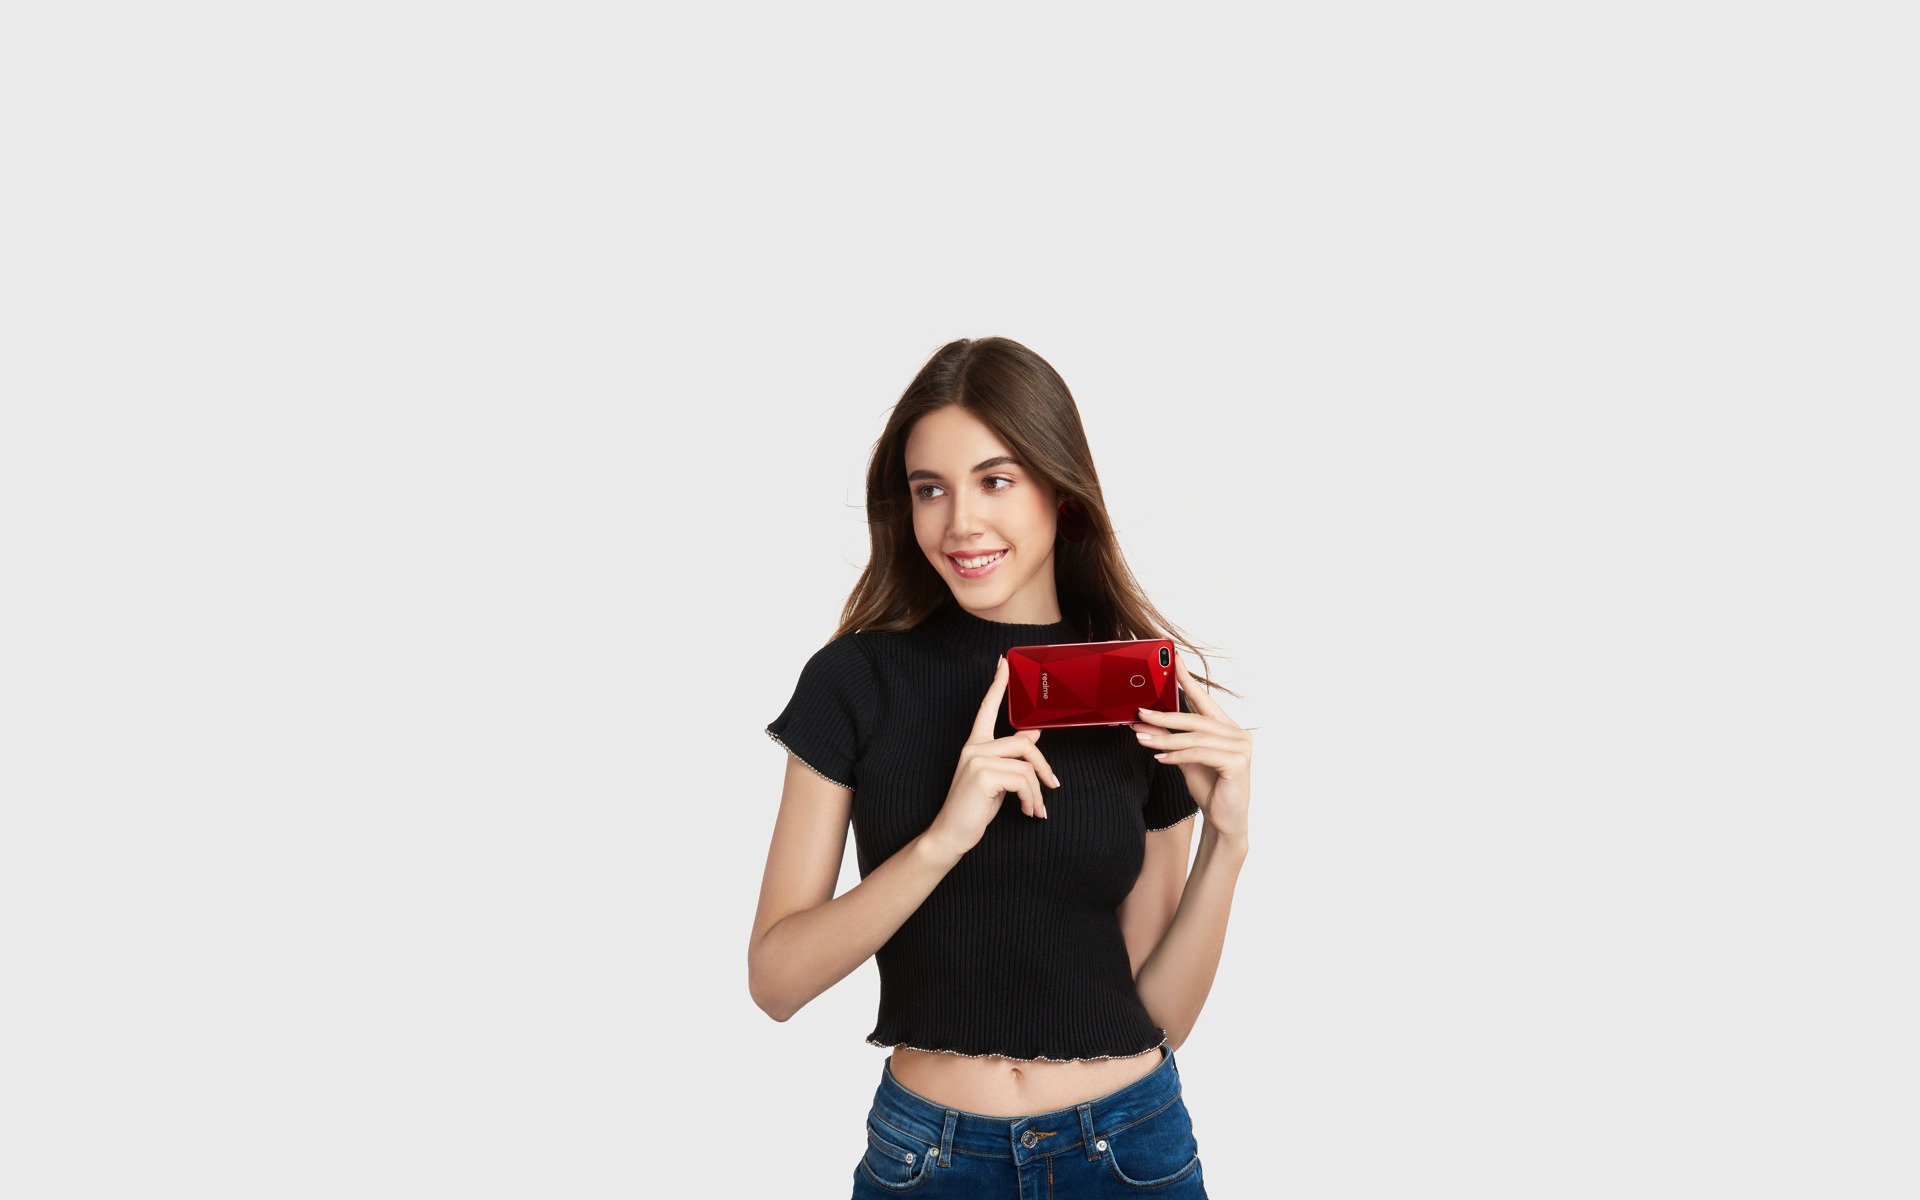 Realme 2 is now official with Snapdragon 450 & 4,230mAh battery 5